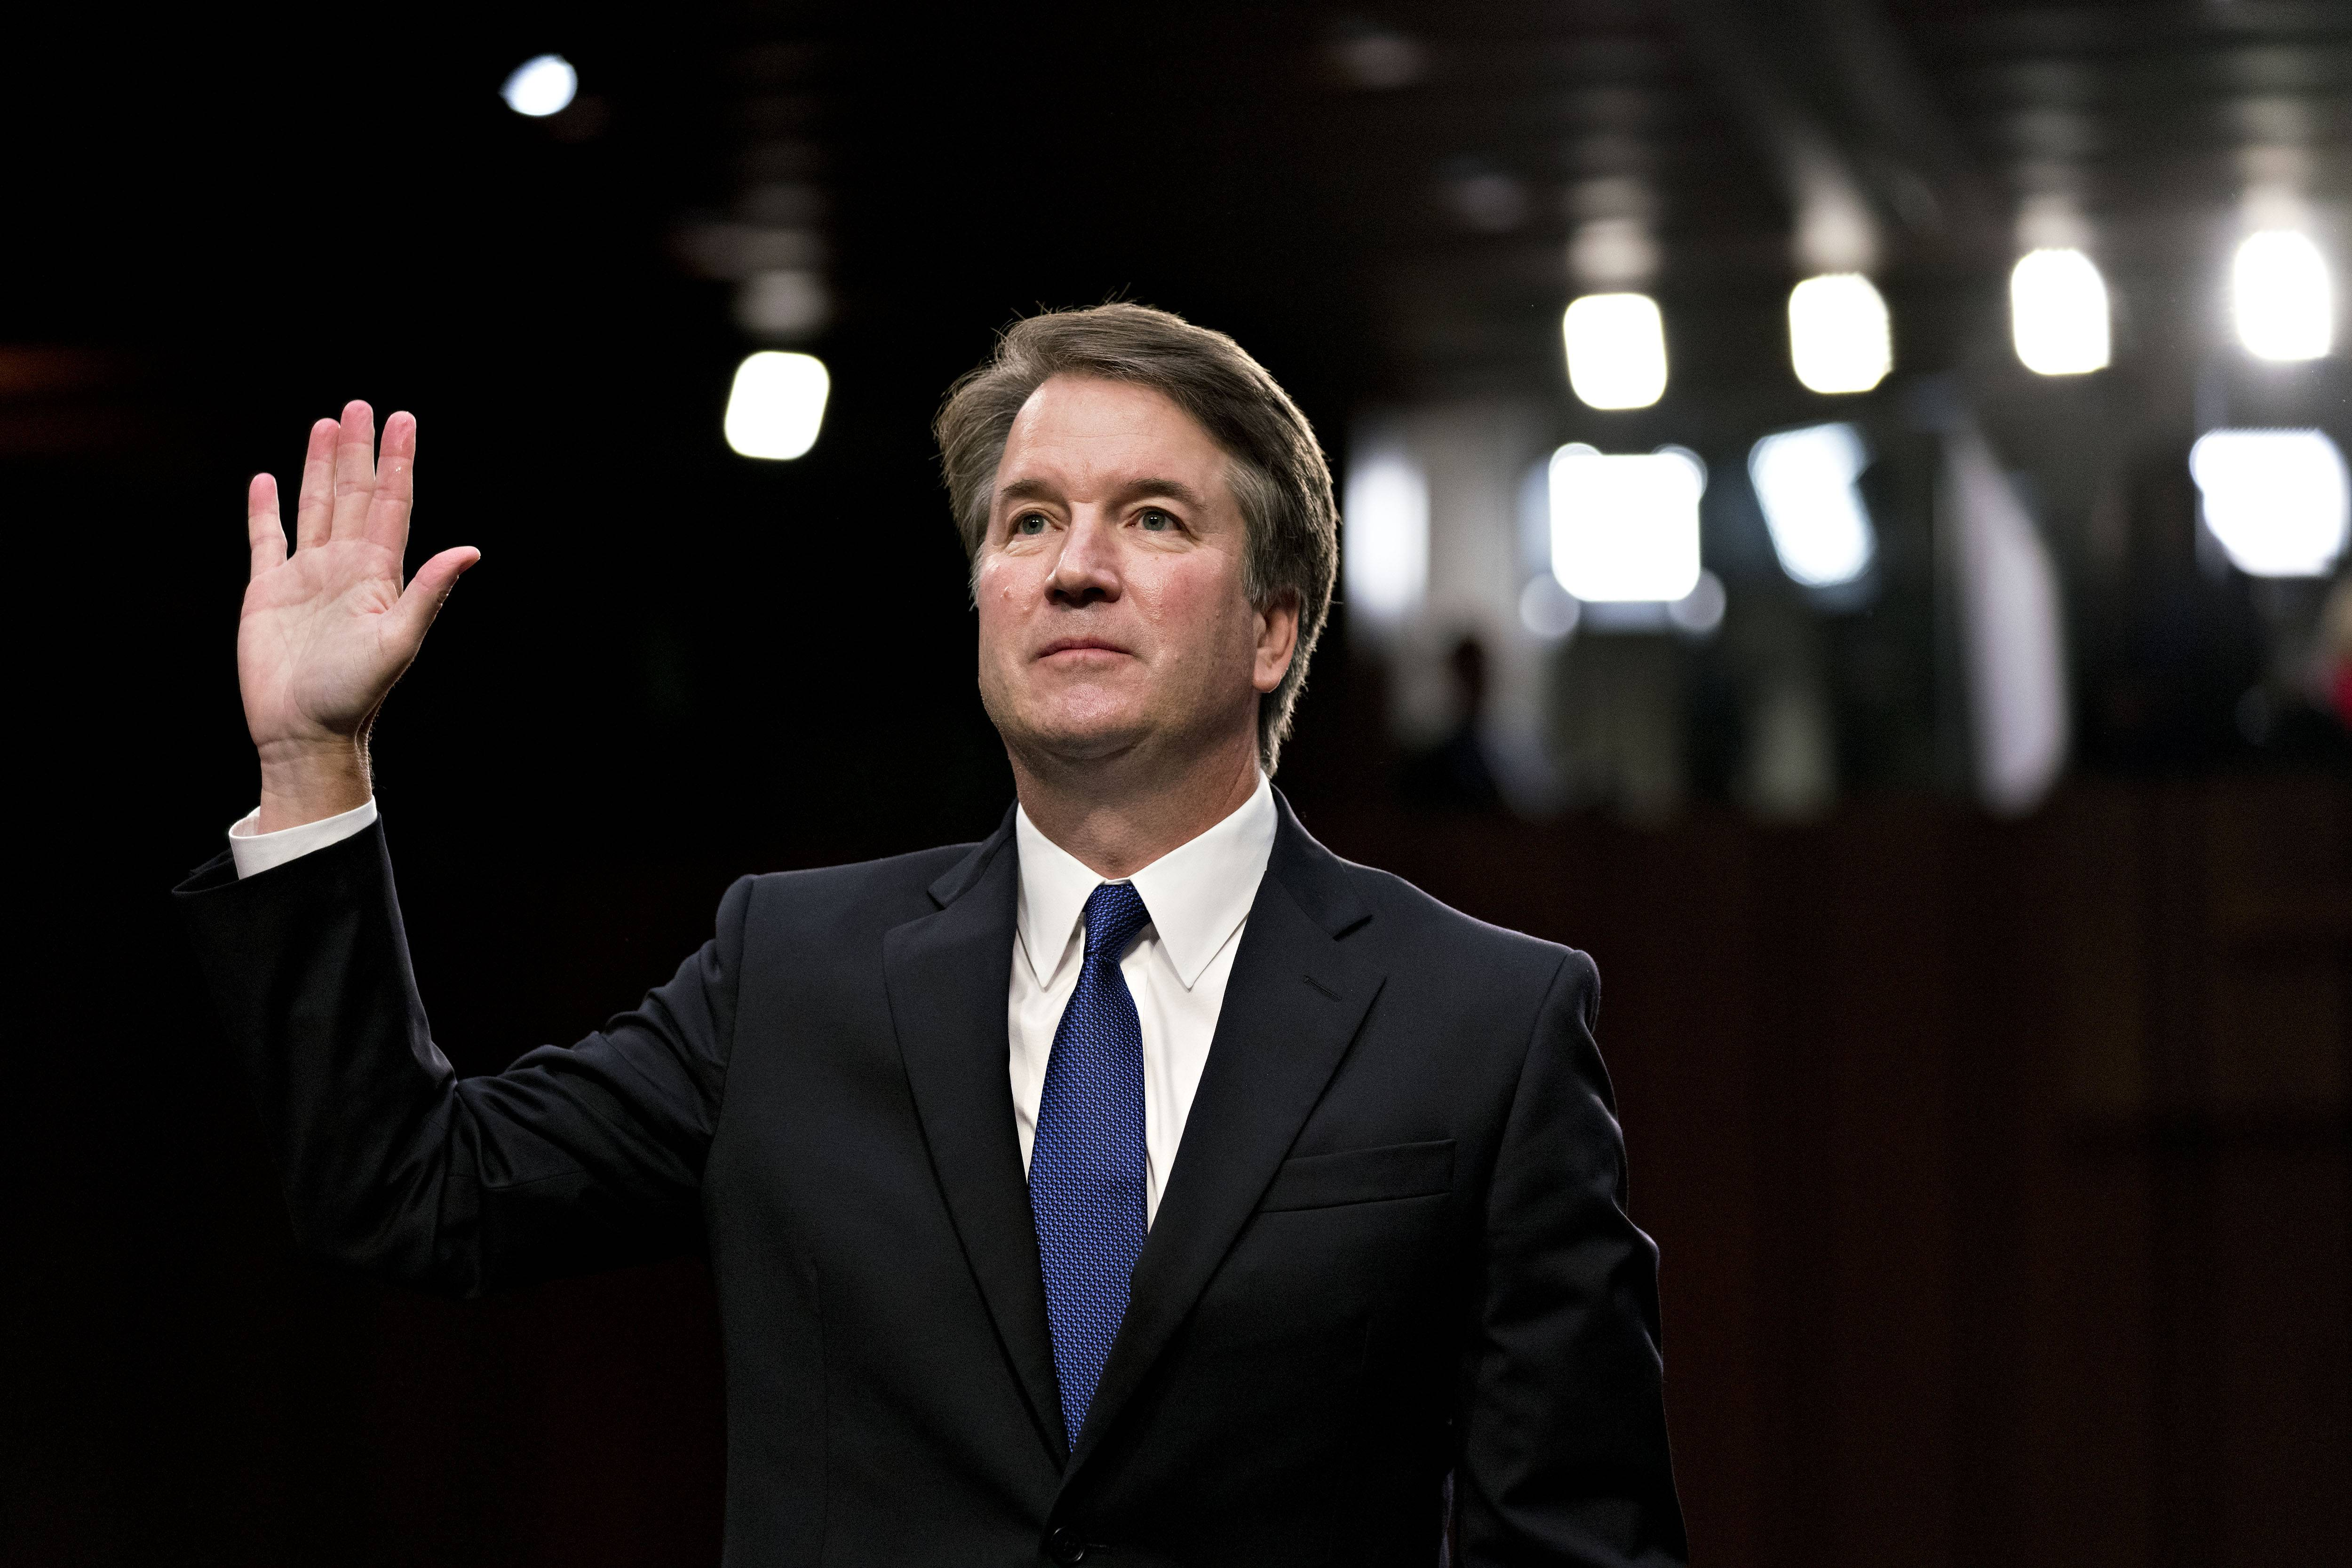 Supreme Court nominee Brett Kavanaugh at his Senate Judiciary Committee confirmation hearing in Washington on Sept. 4, 2018.